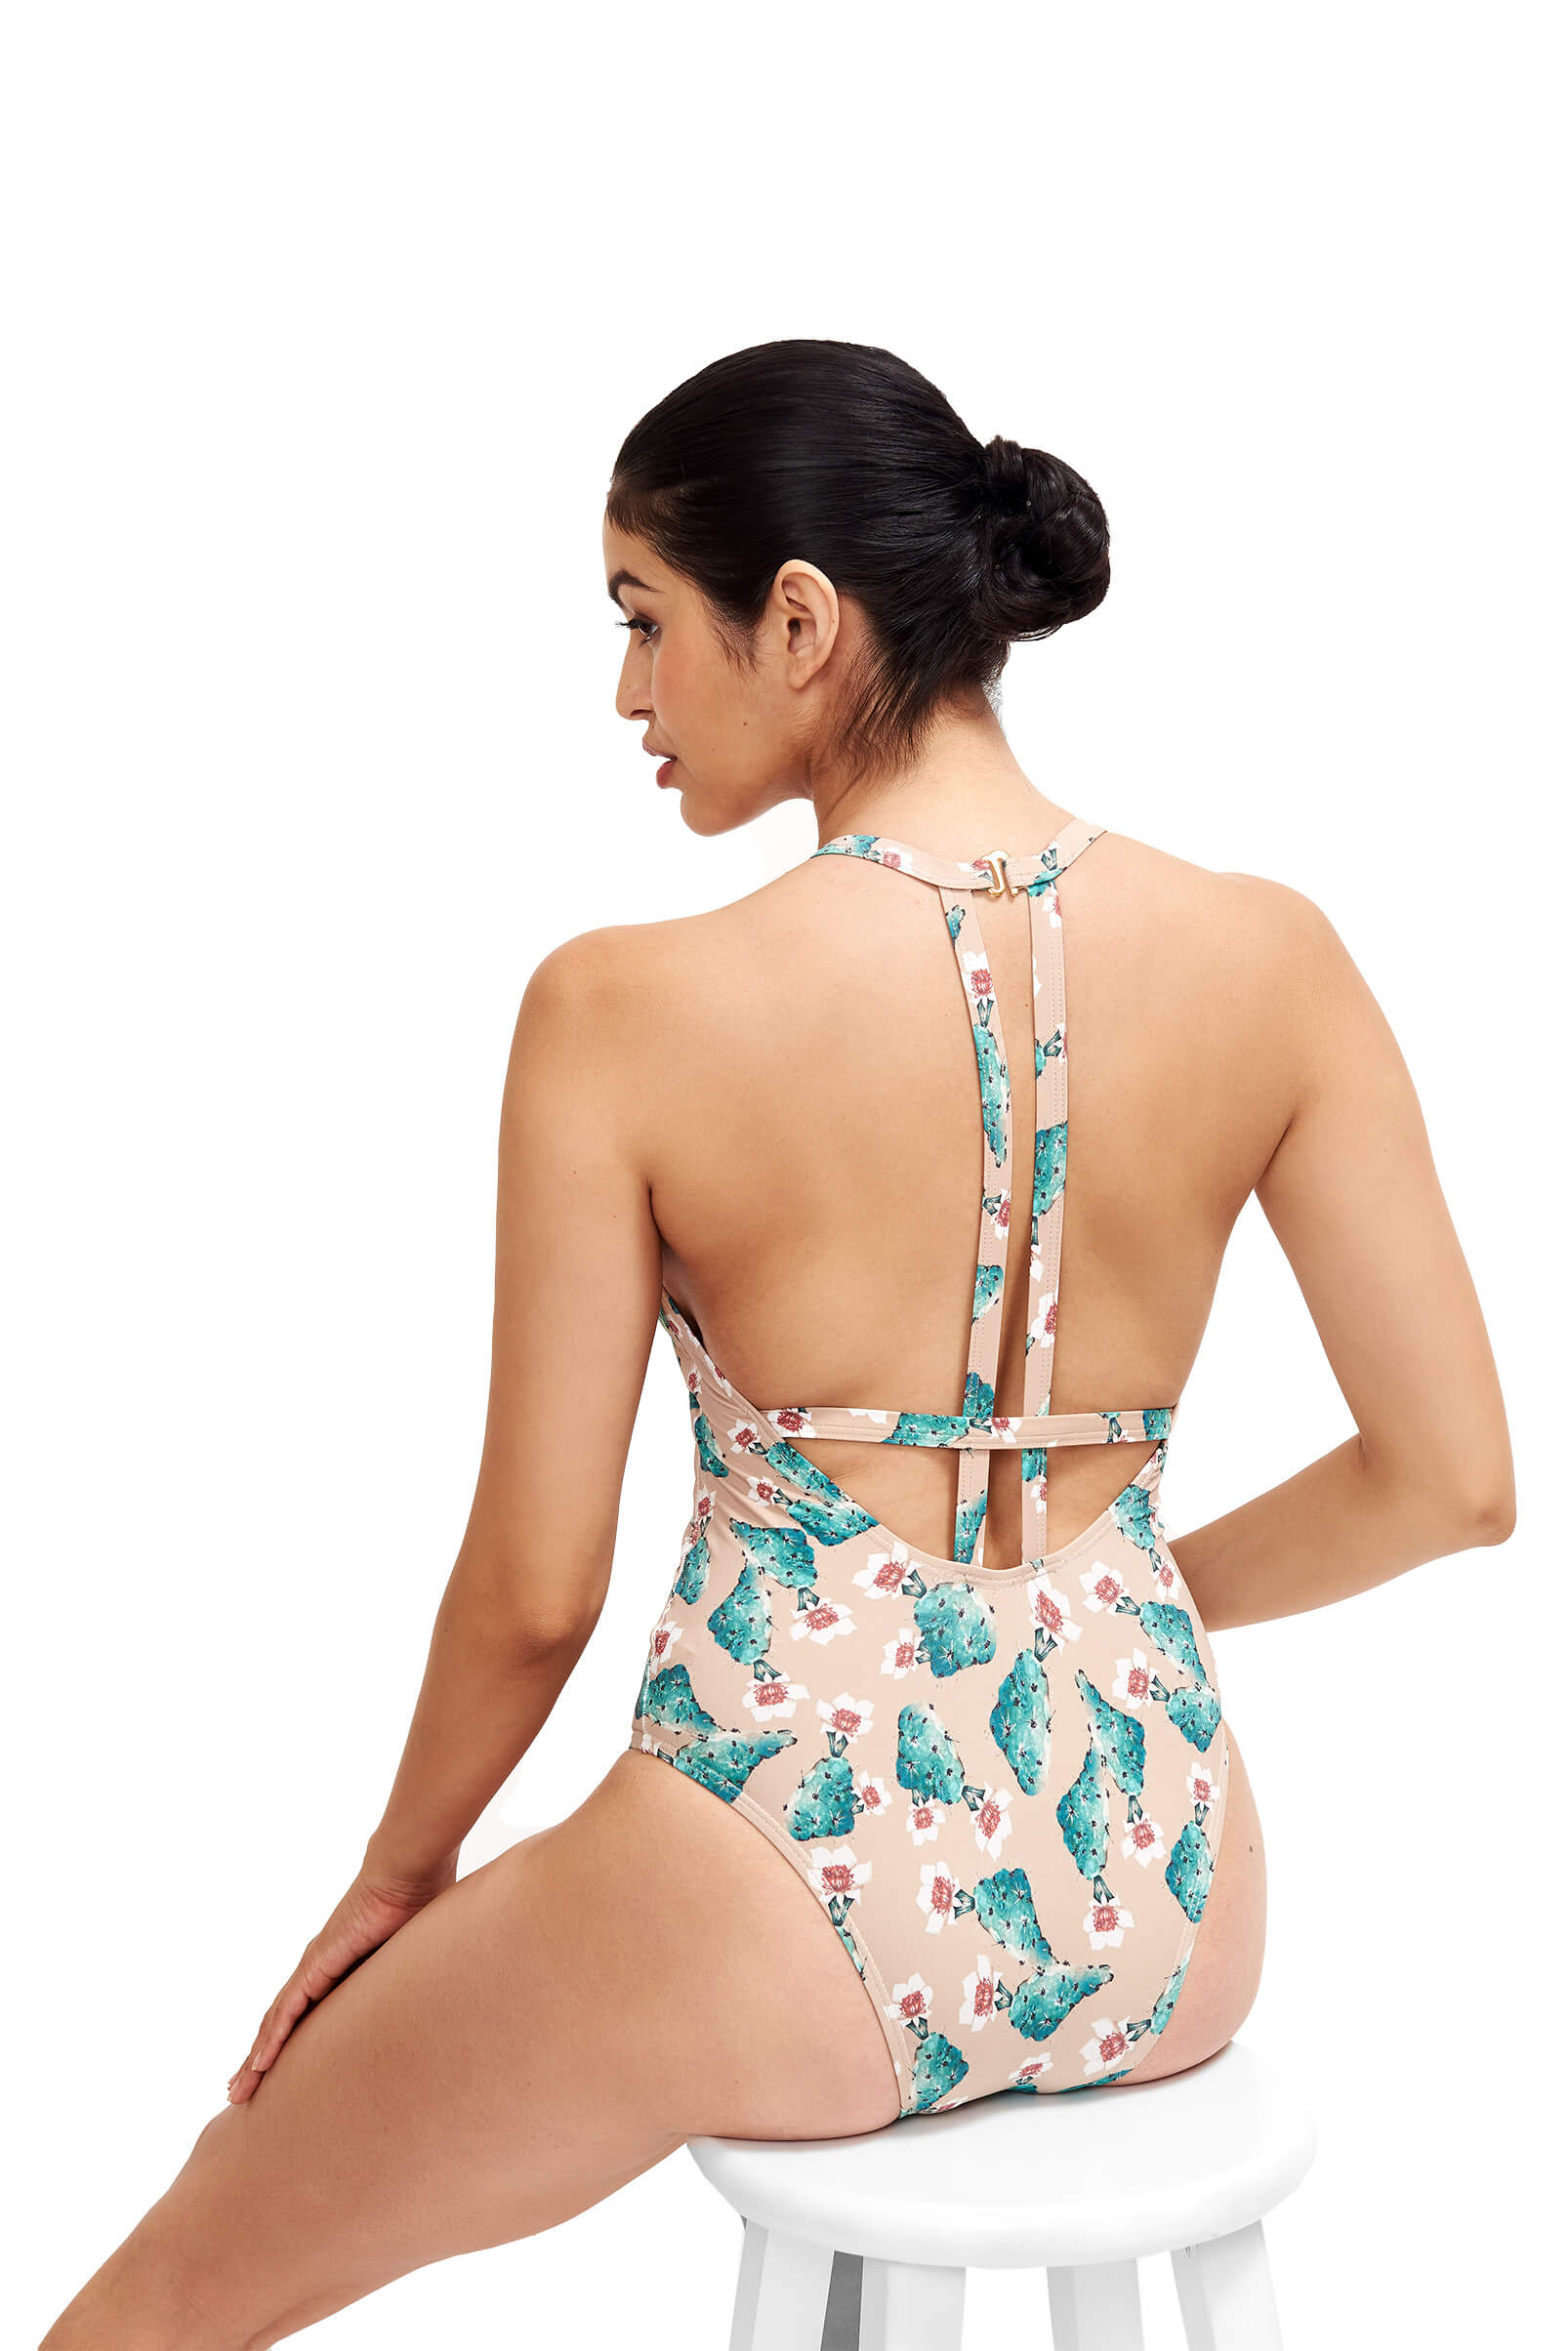 Front image of the Denise cactus swimsuit